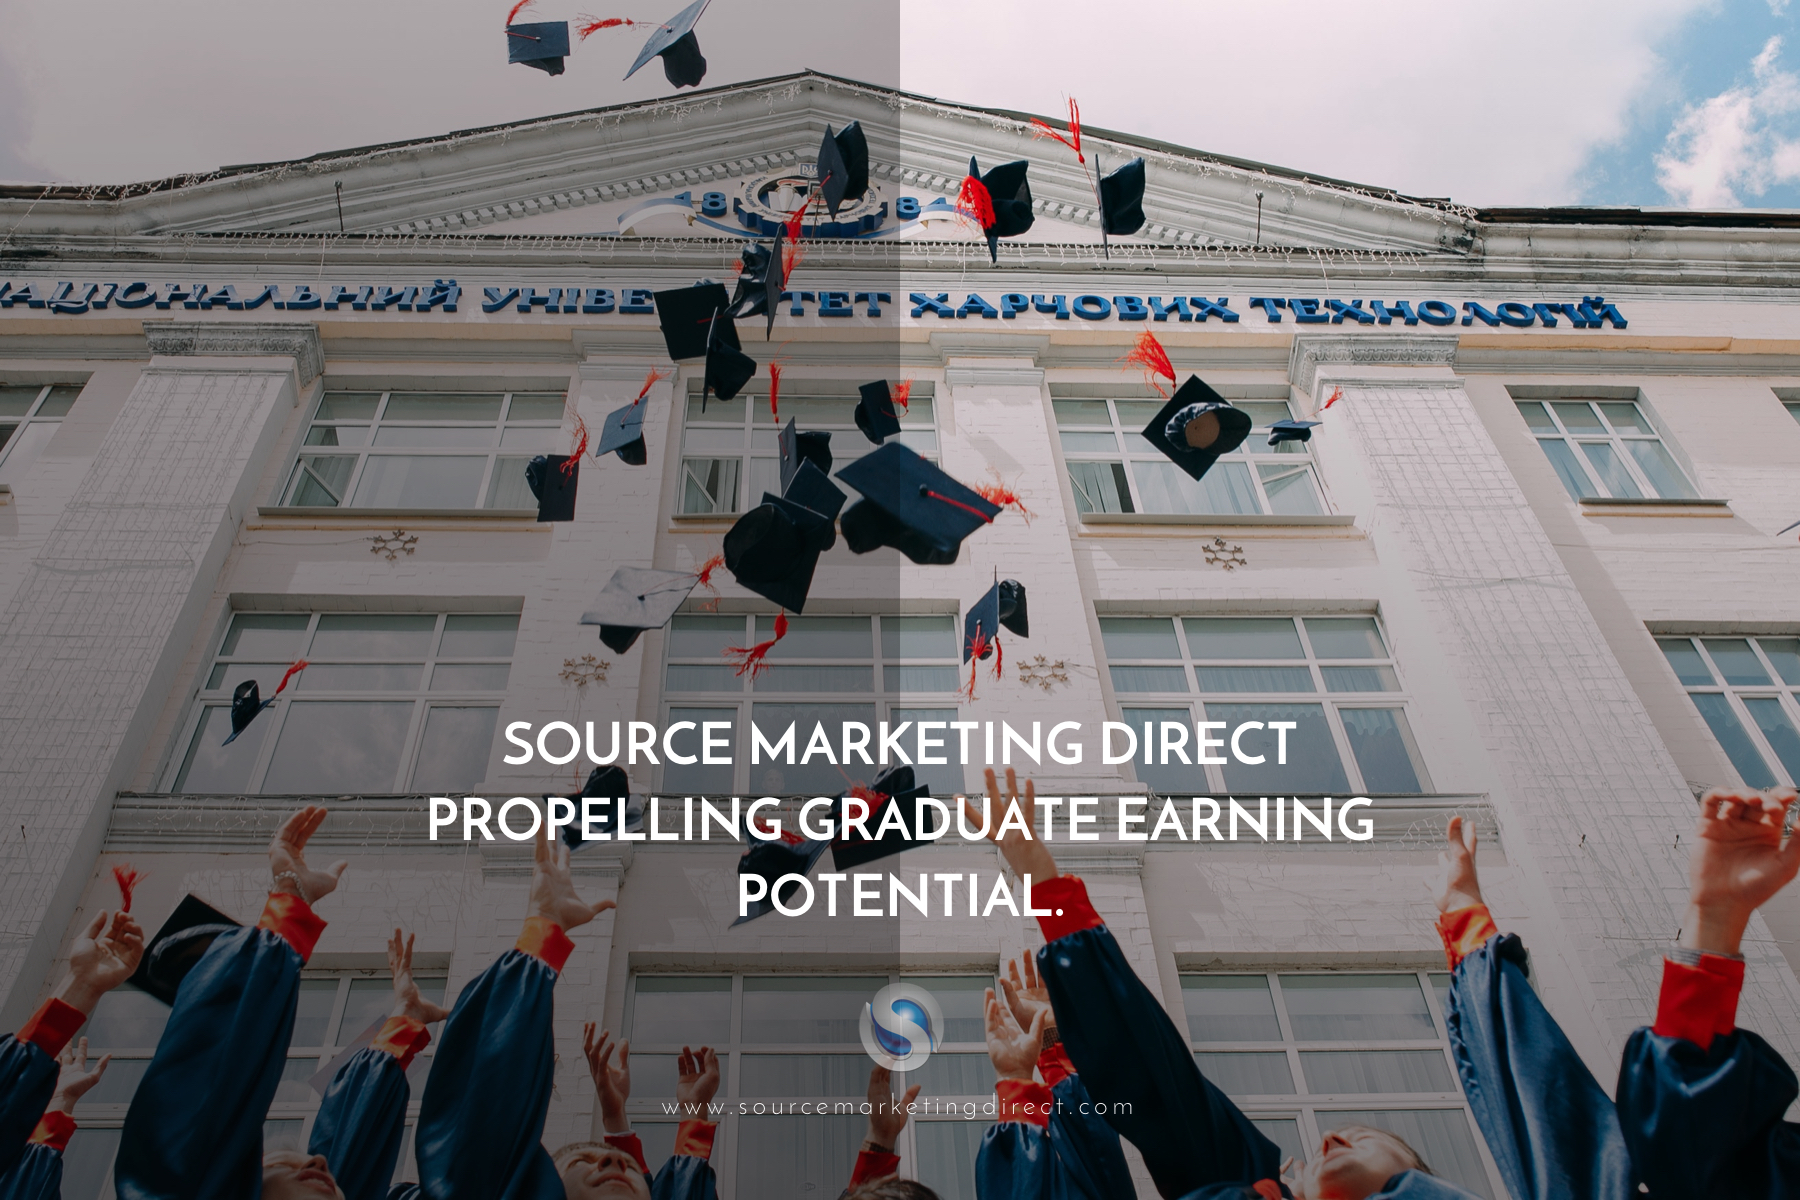 Source Marketing Direct propelling graduate earning potential.